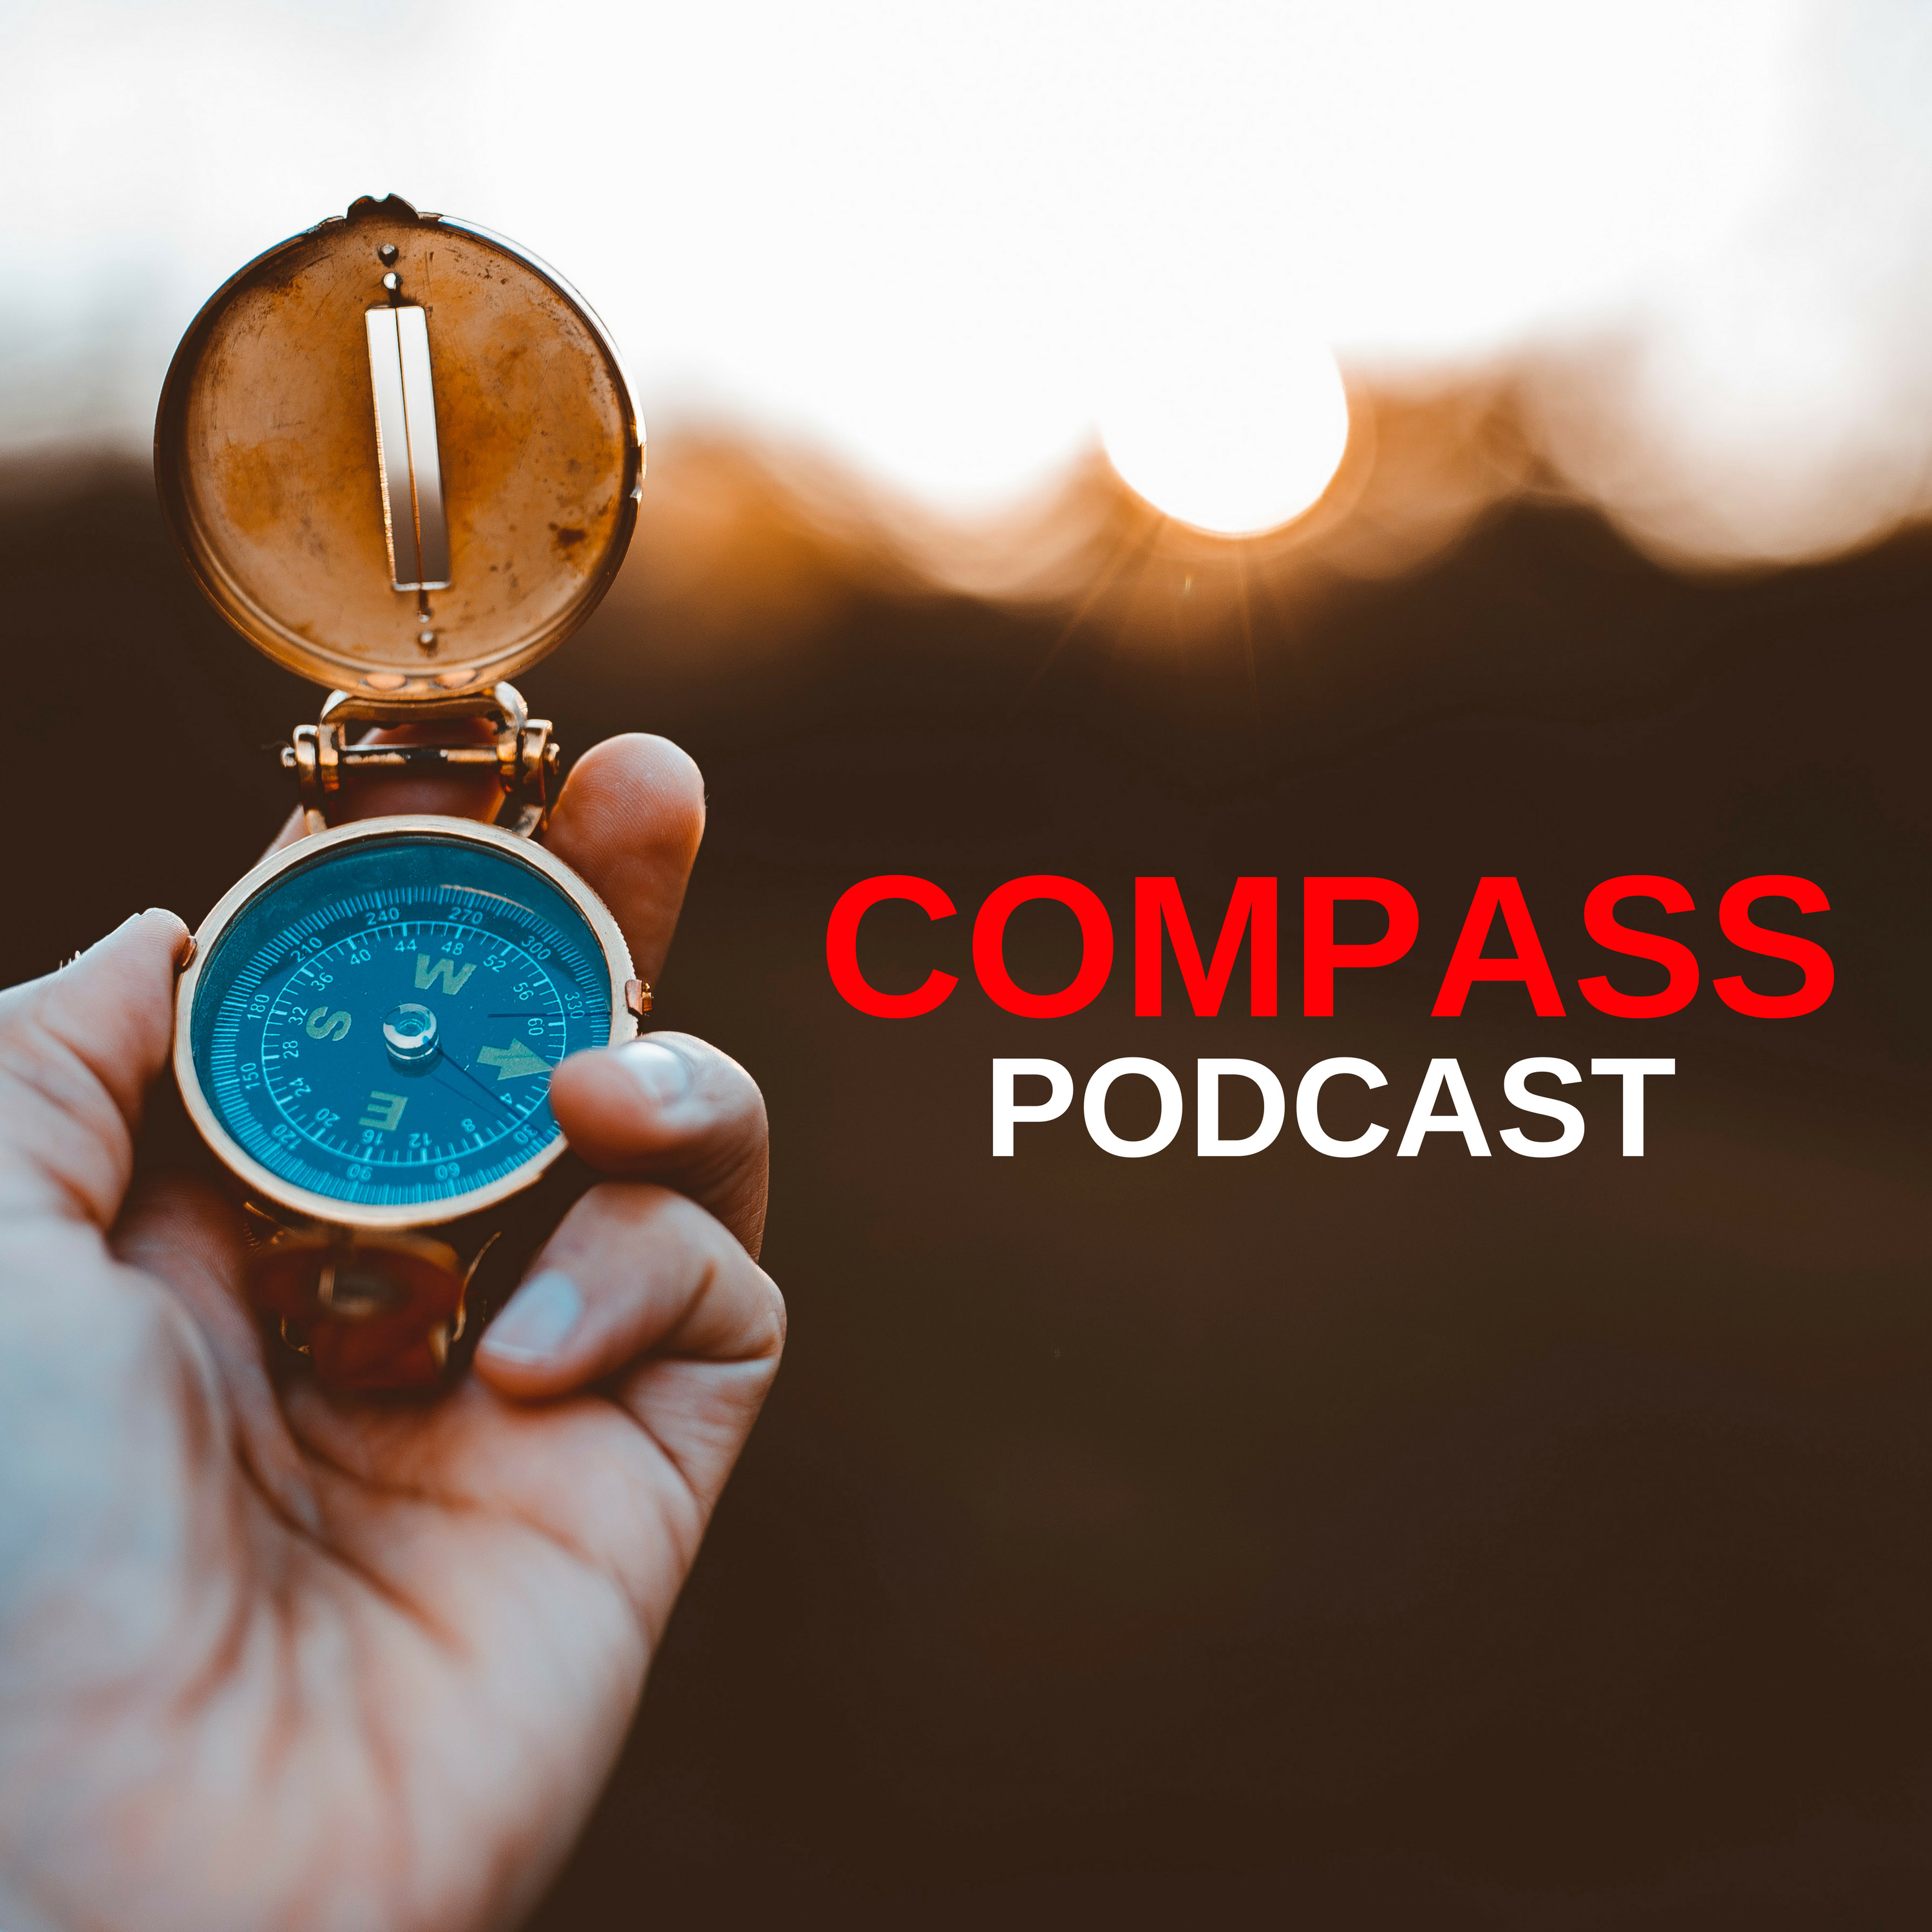 Compass Podcast: Finding the spirituality in the day-to-day